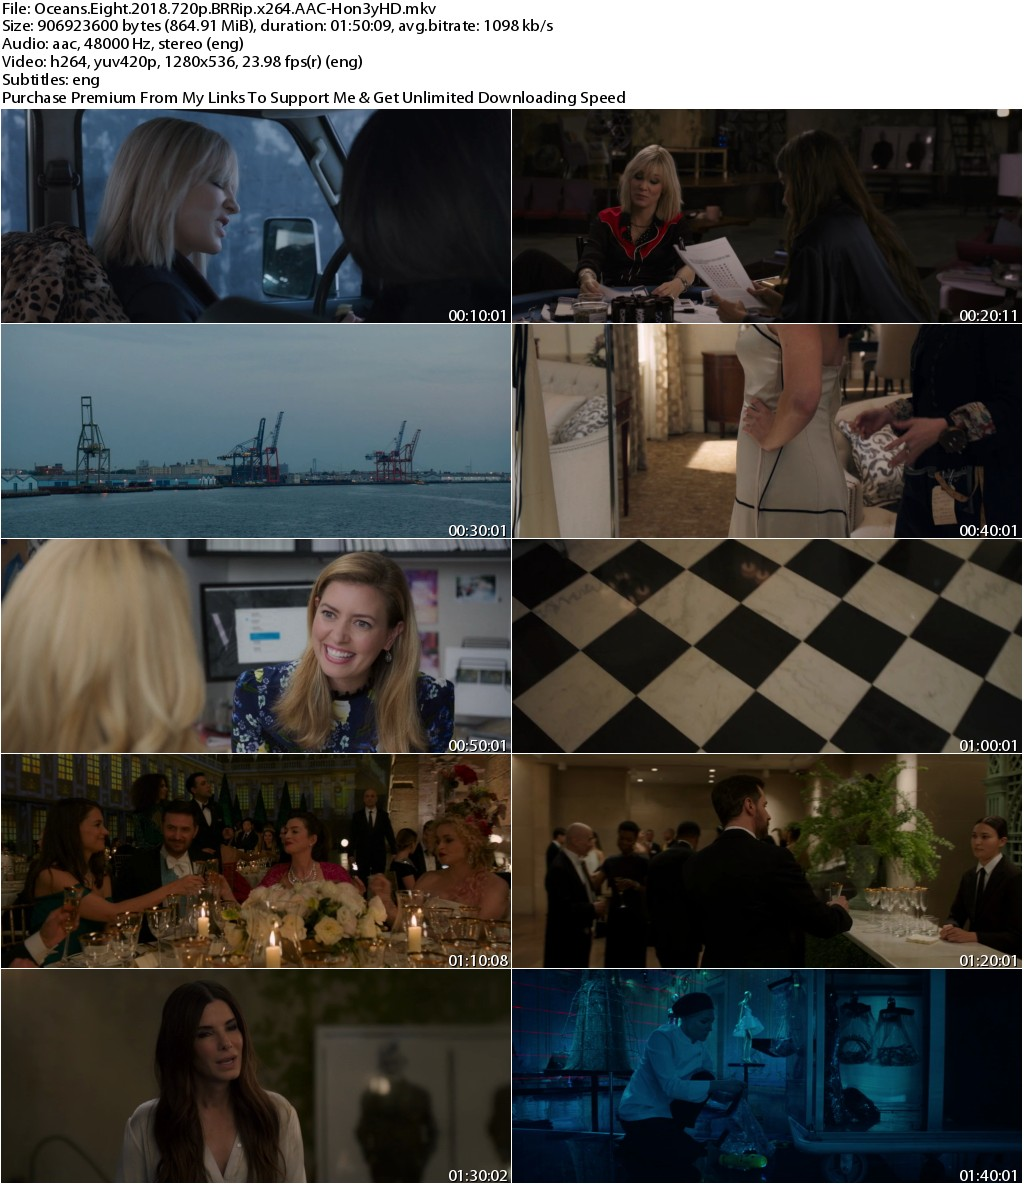 Oceans Eight (2018) 720p BRRip x264 AAC-Hon3yHD